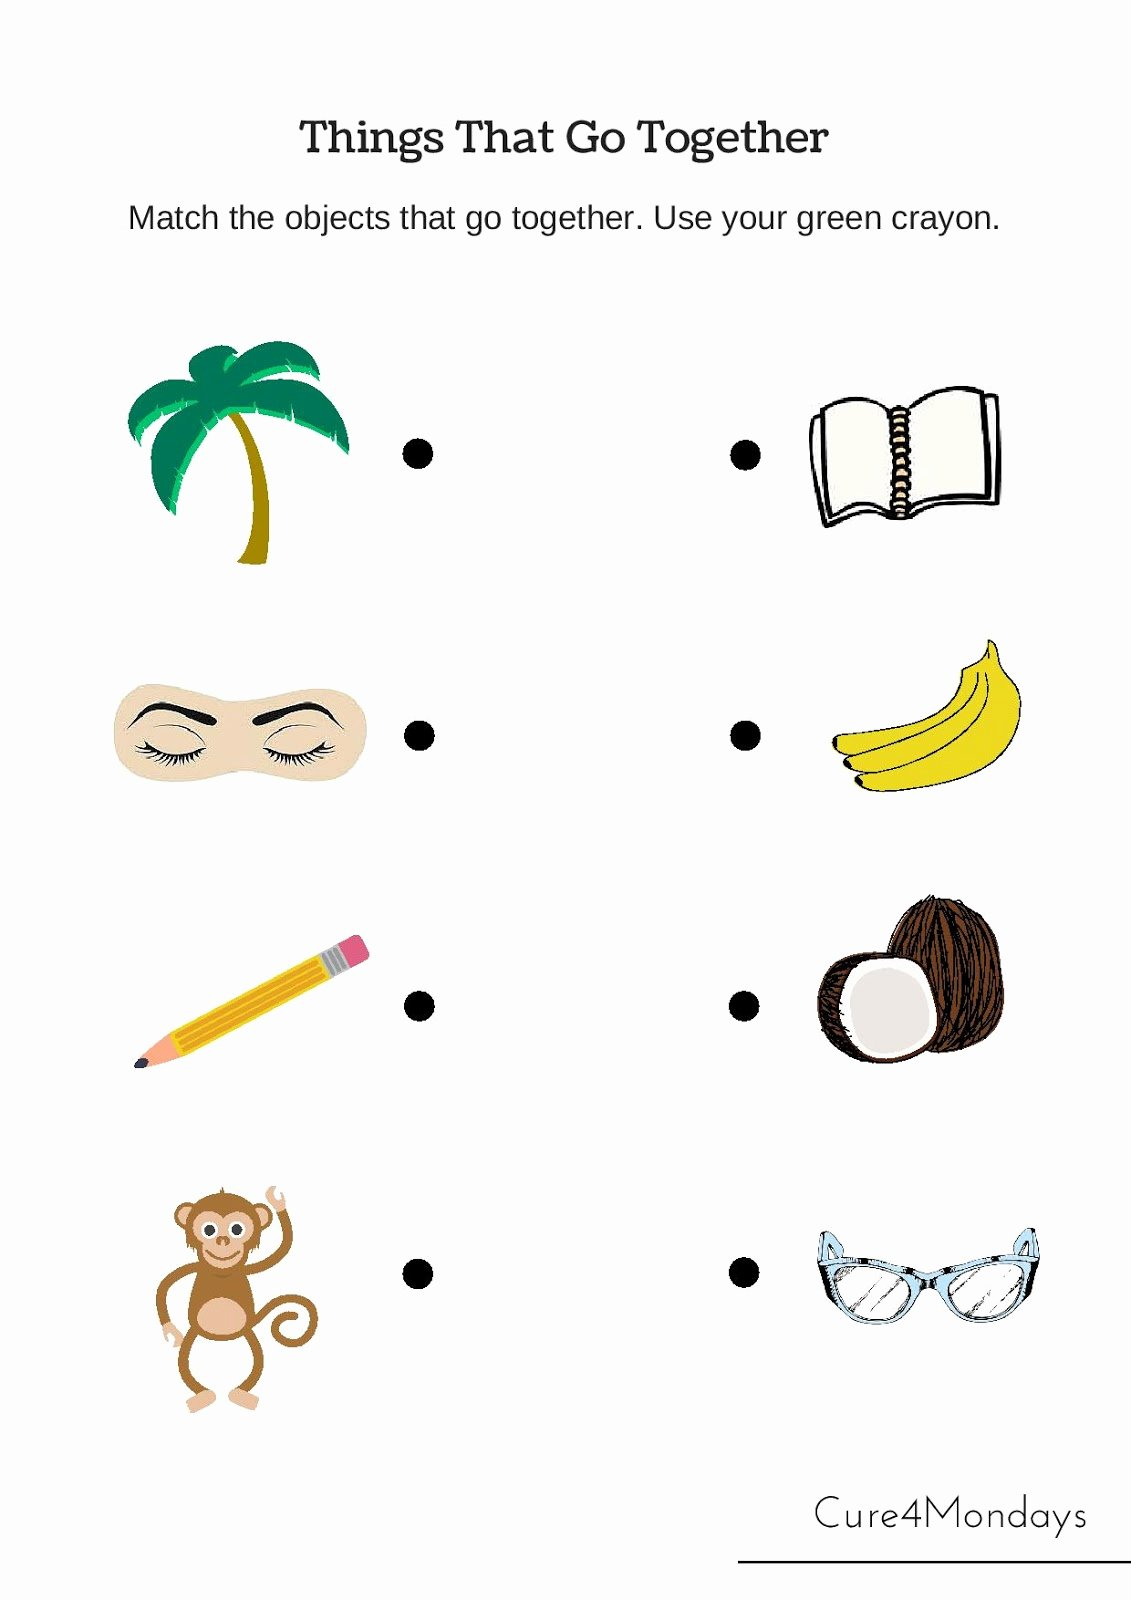 Things that Go together Worksheets for Preschoolers Unique Freeschool Free Printable Kindergarten Lessons Cure for